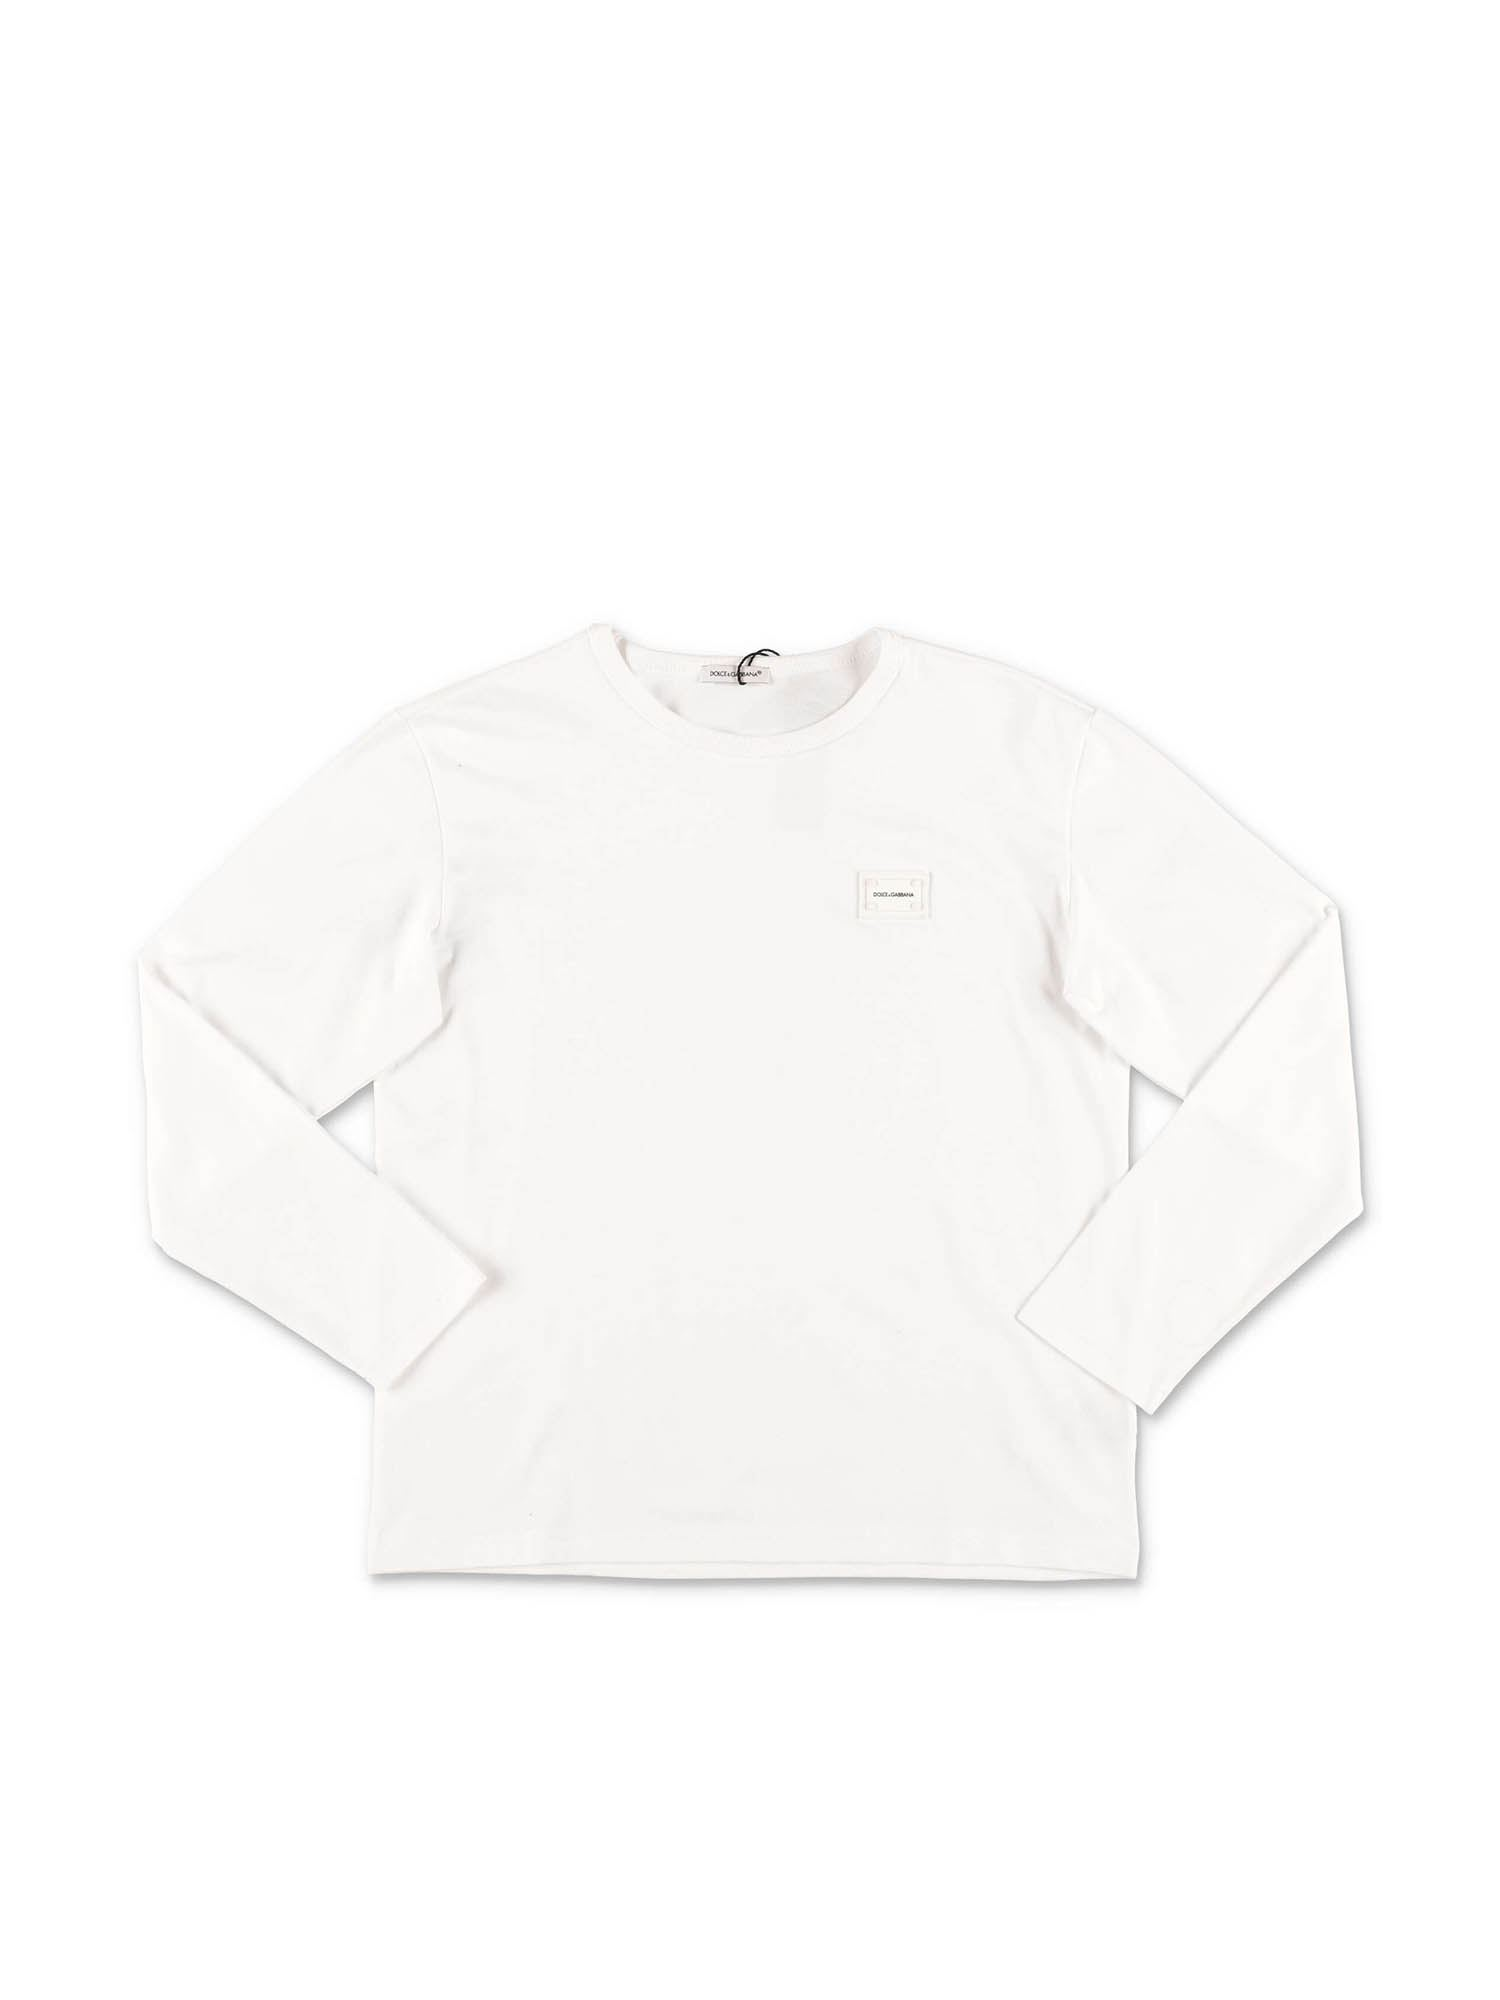 Dolce & Gabbana Jr LONG SLEEVE T-SHIRT IN WHITE